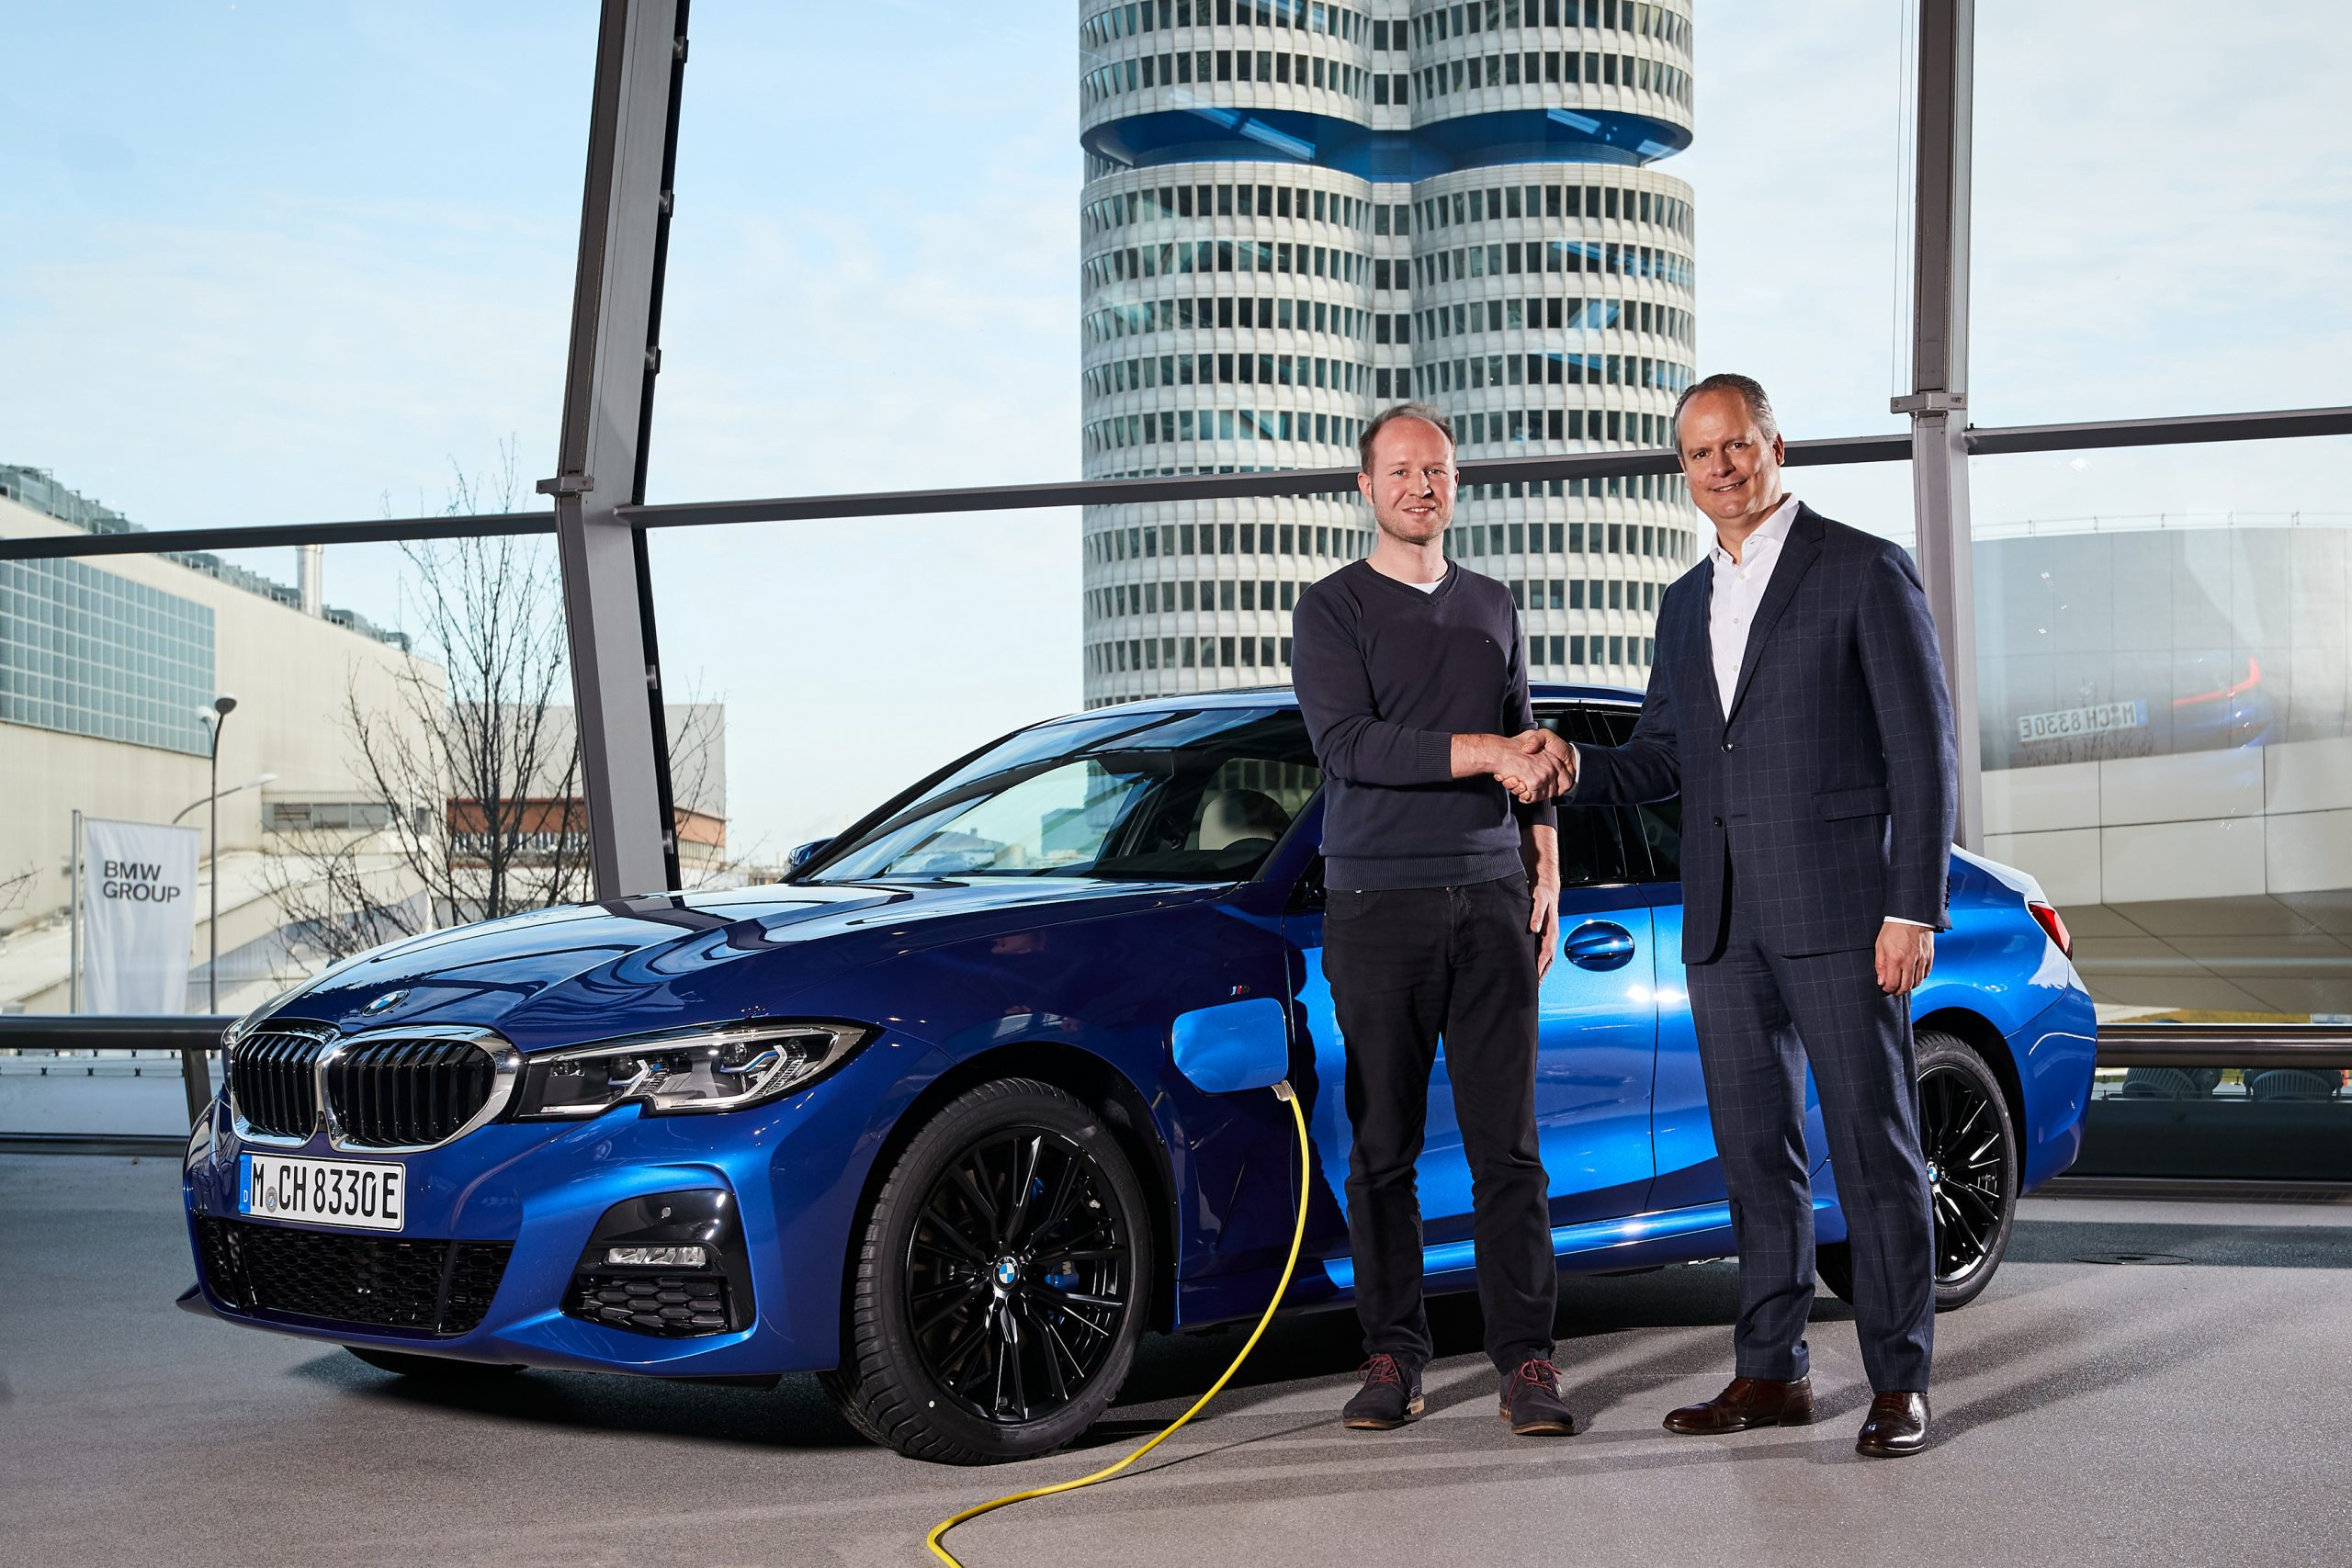 Half a million electrified BMW Group vehicles already on the roads